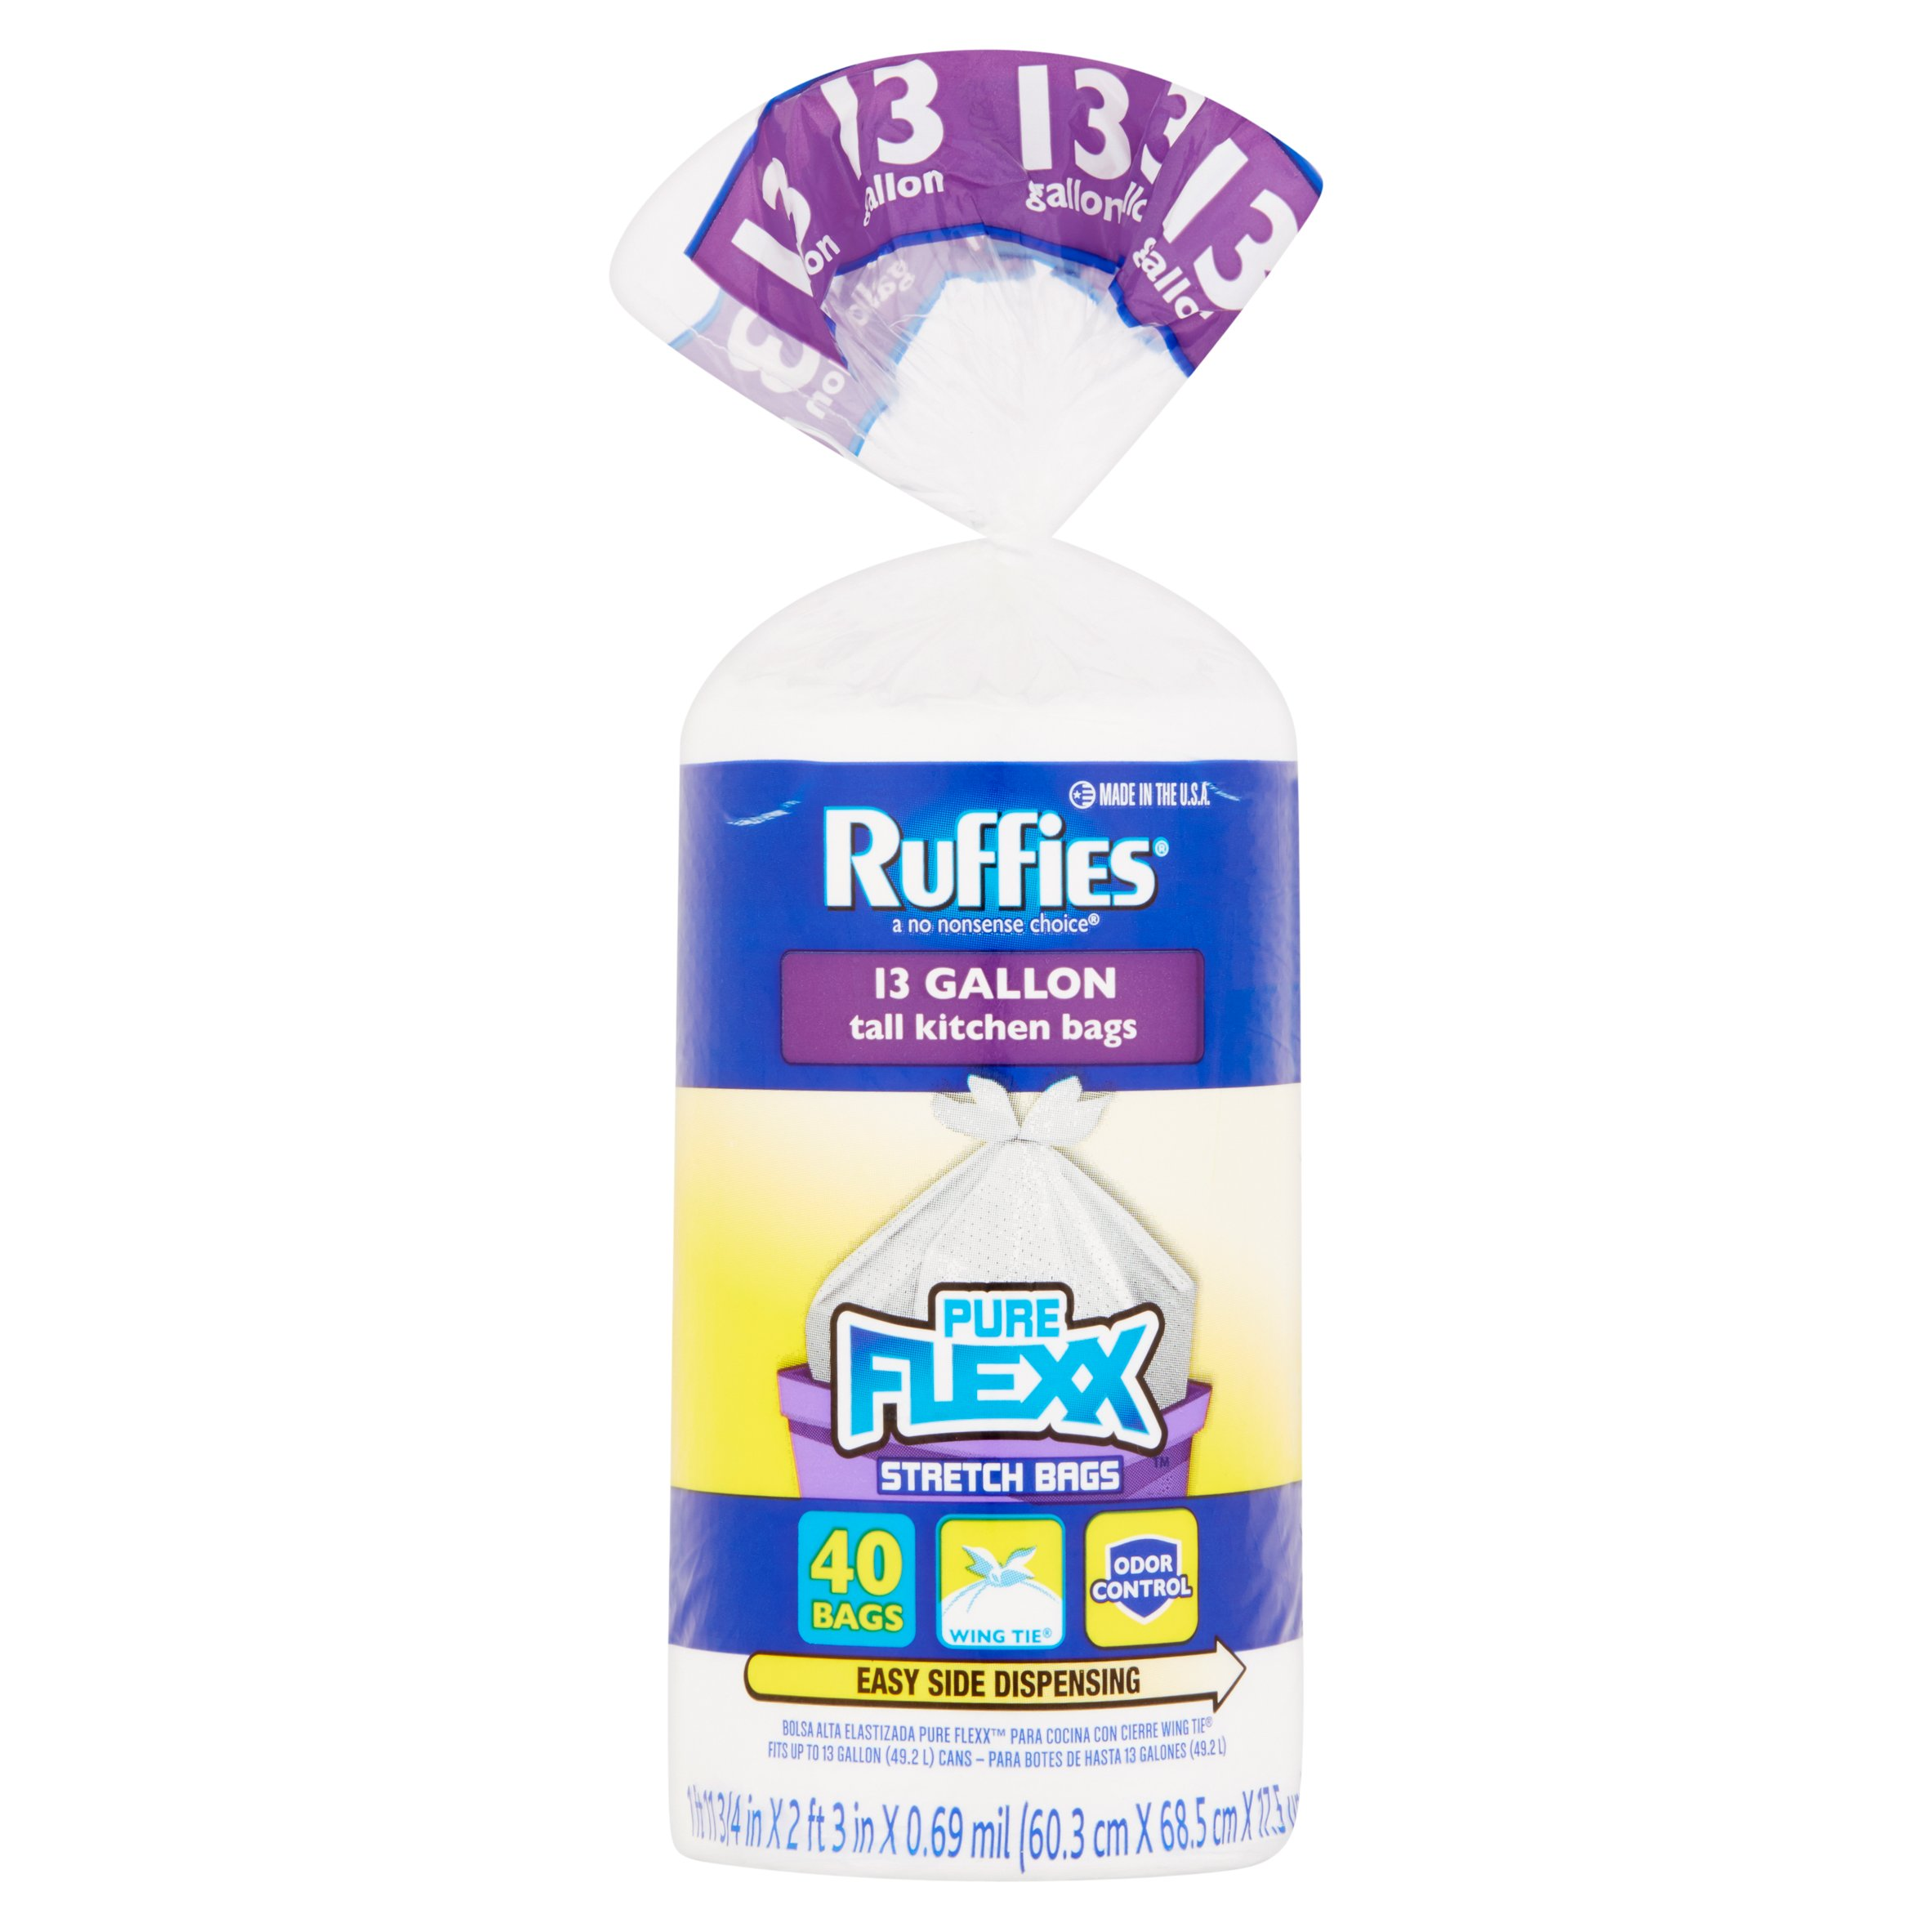 Ruffies 13 Gallon Tall Kitchen Bags, 40 count